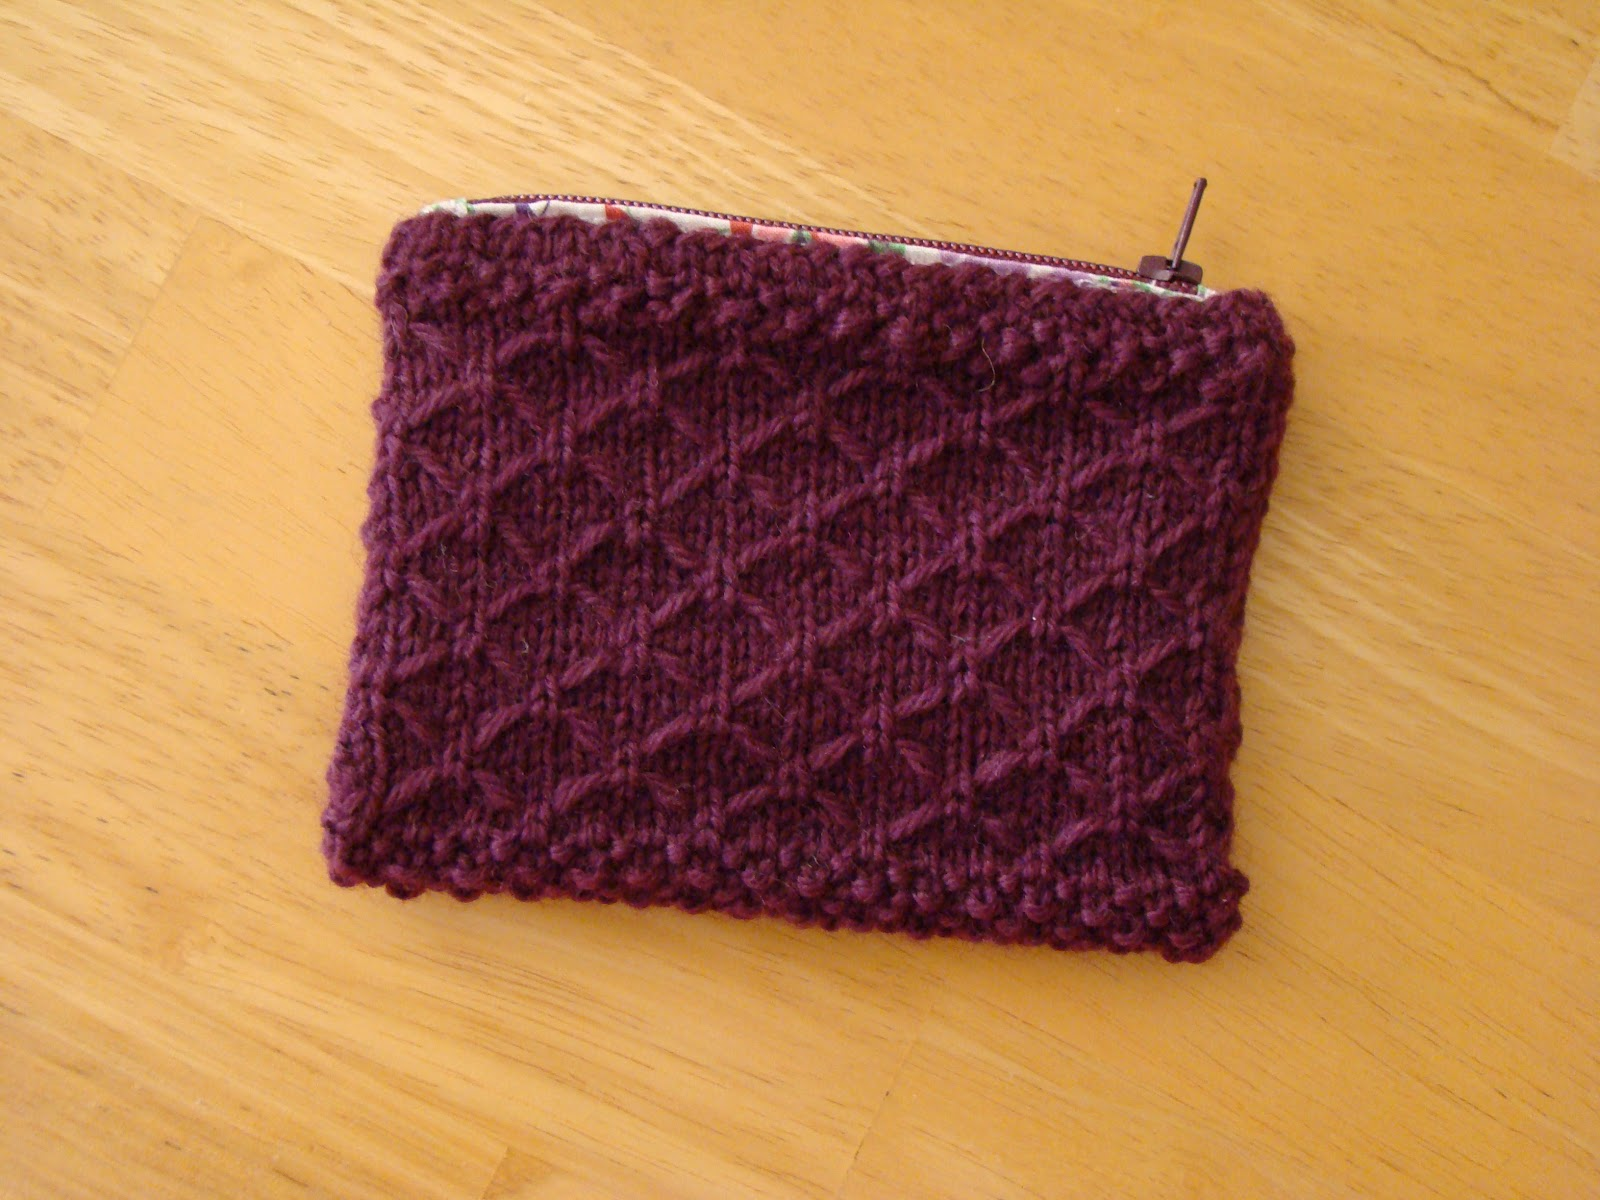 Knitted Purse Pattern : knackful knitter: A knitted coin purse for me